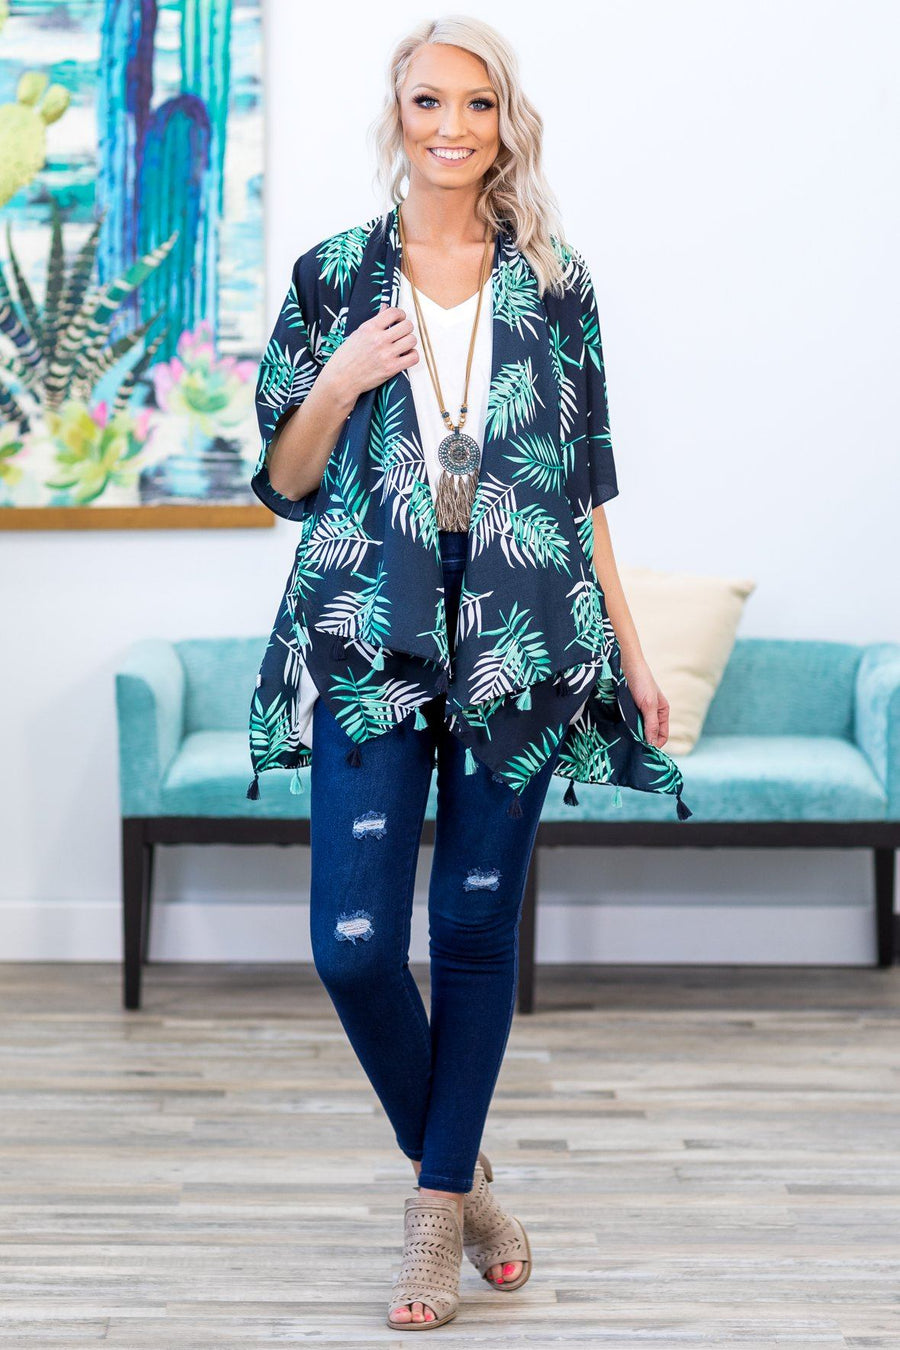 ffe71b78f The #1 Women's Kimono Cardigan Boutique. Shop Our Selection! - Filly ...